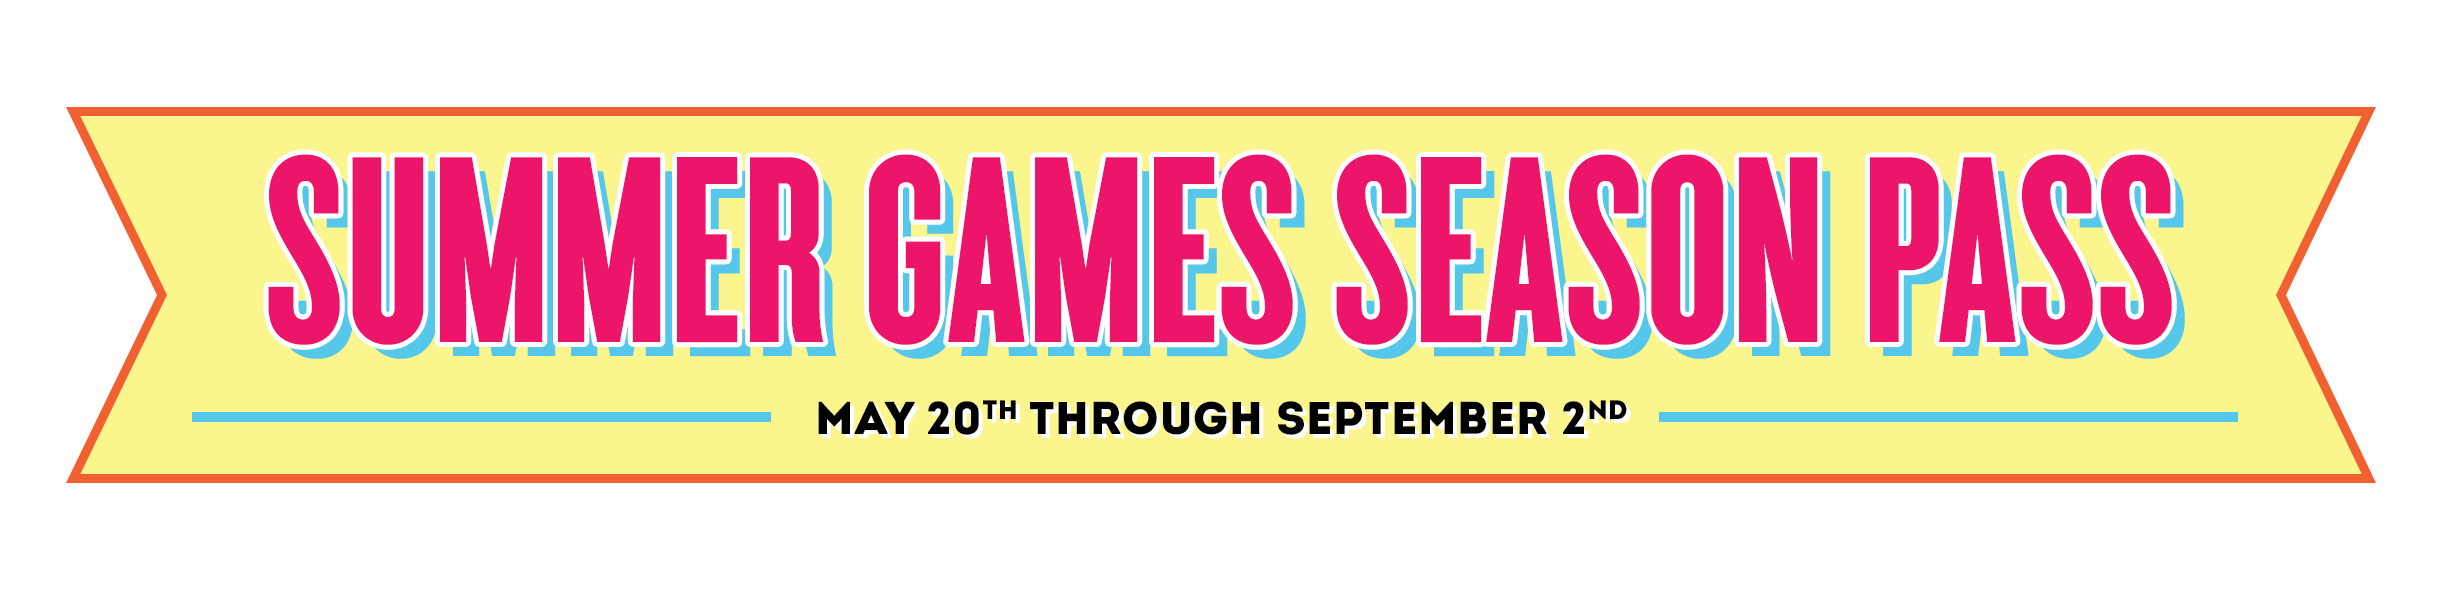 Text: Summer Games Season Pass. May 20th through September 2nd.